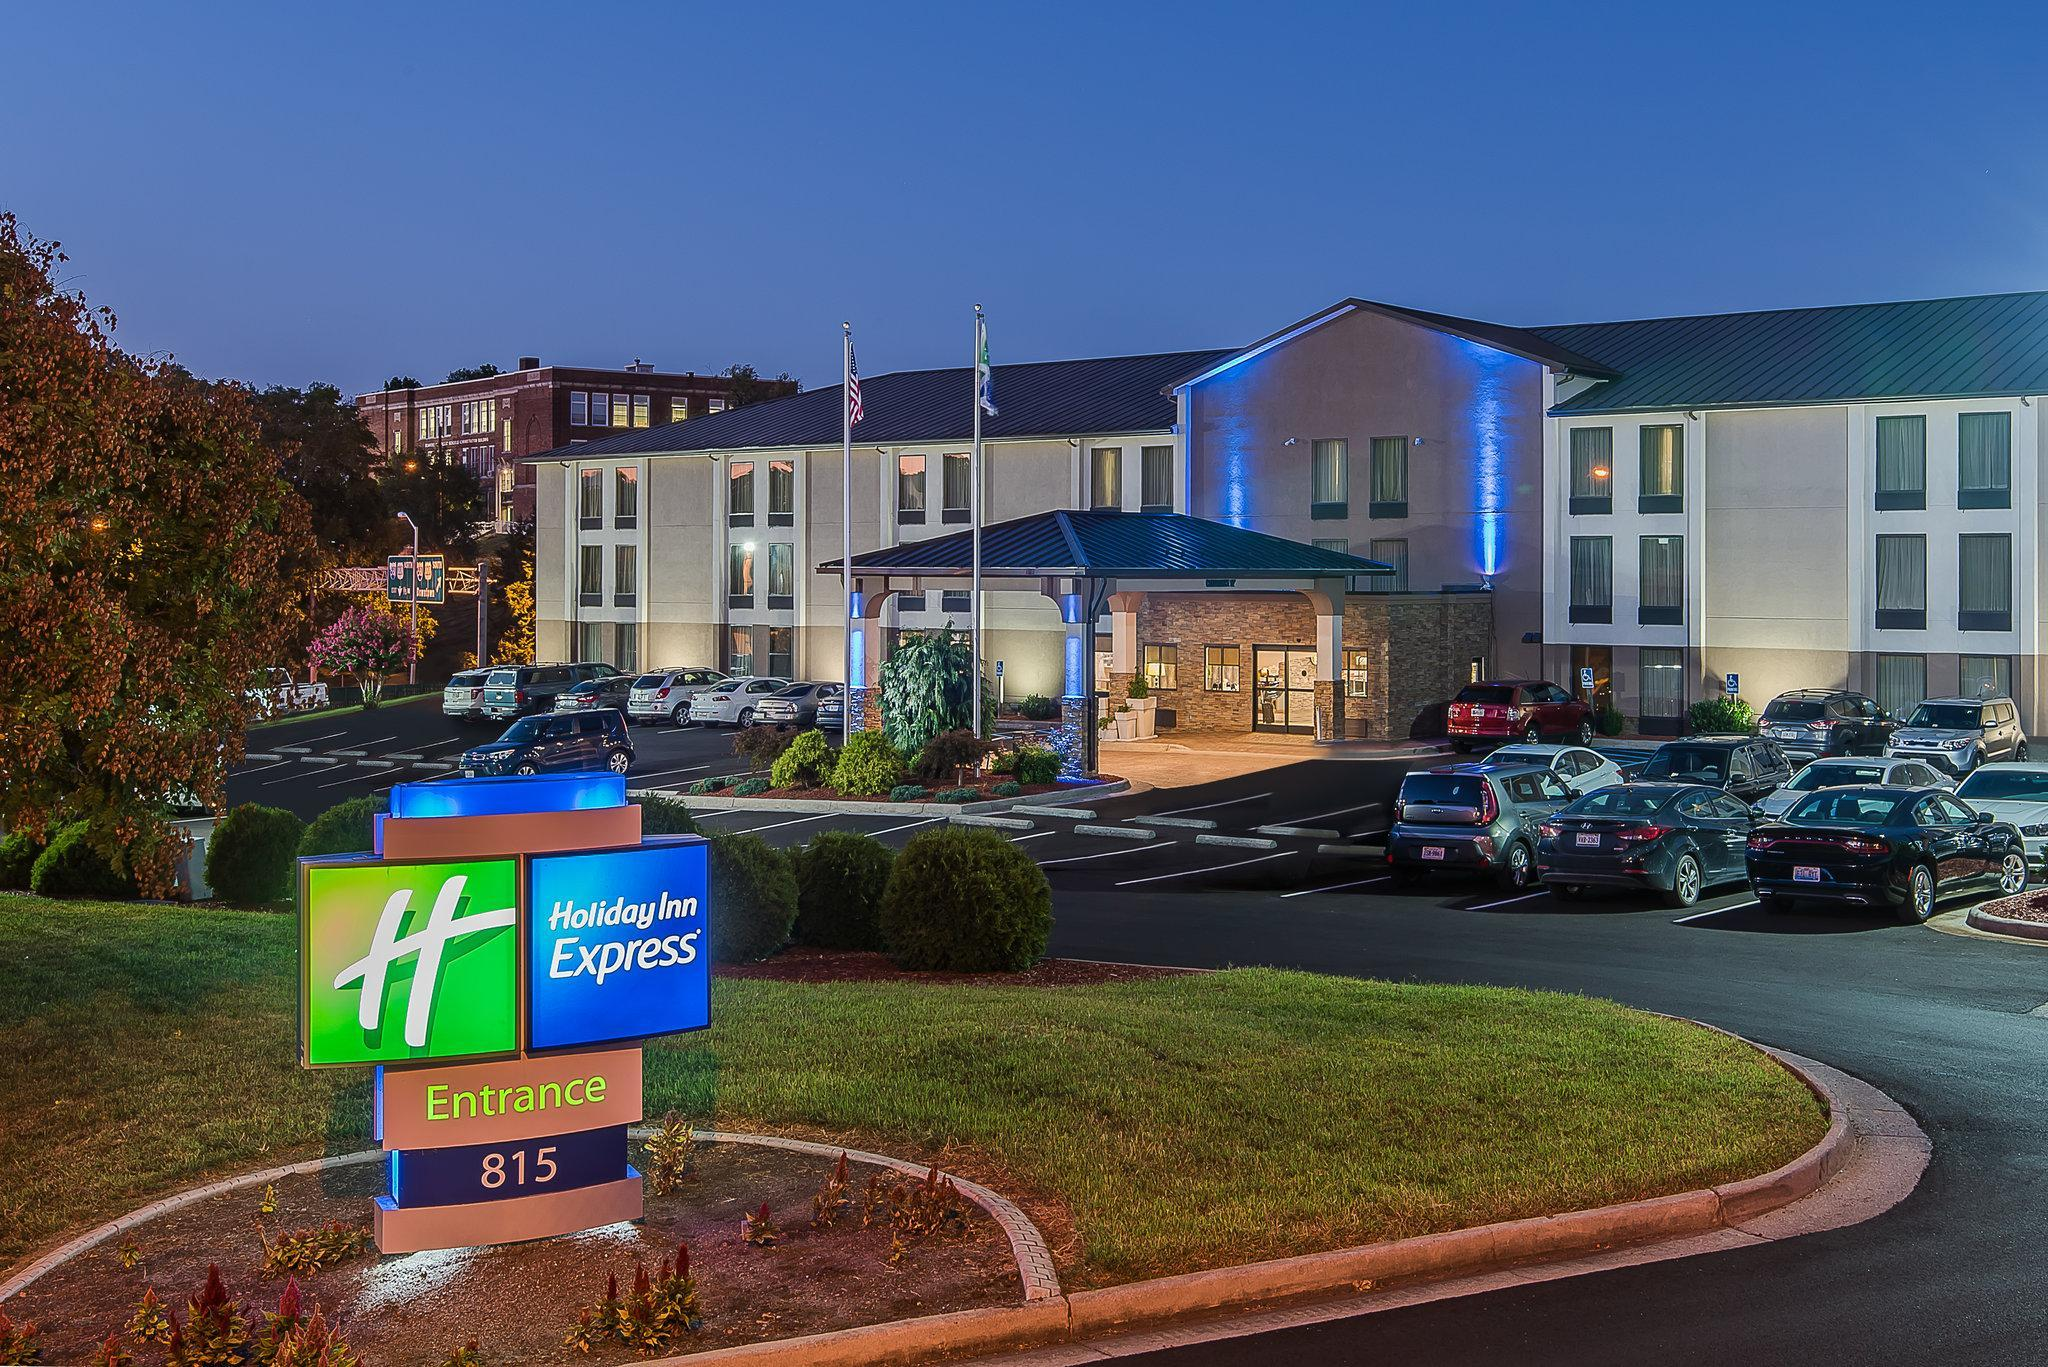 Holiday Inn Express Hotel Roanoke Civic Center